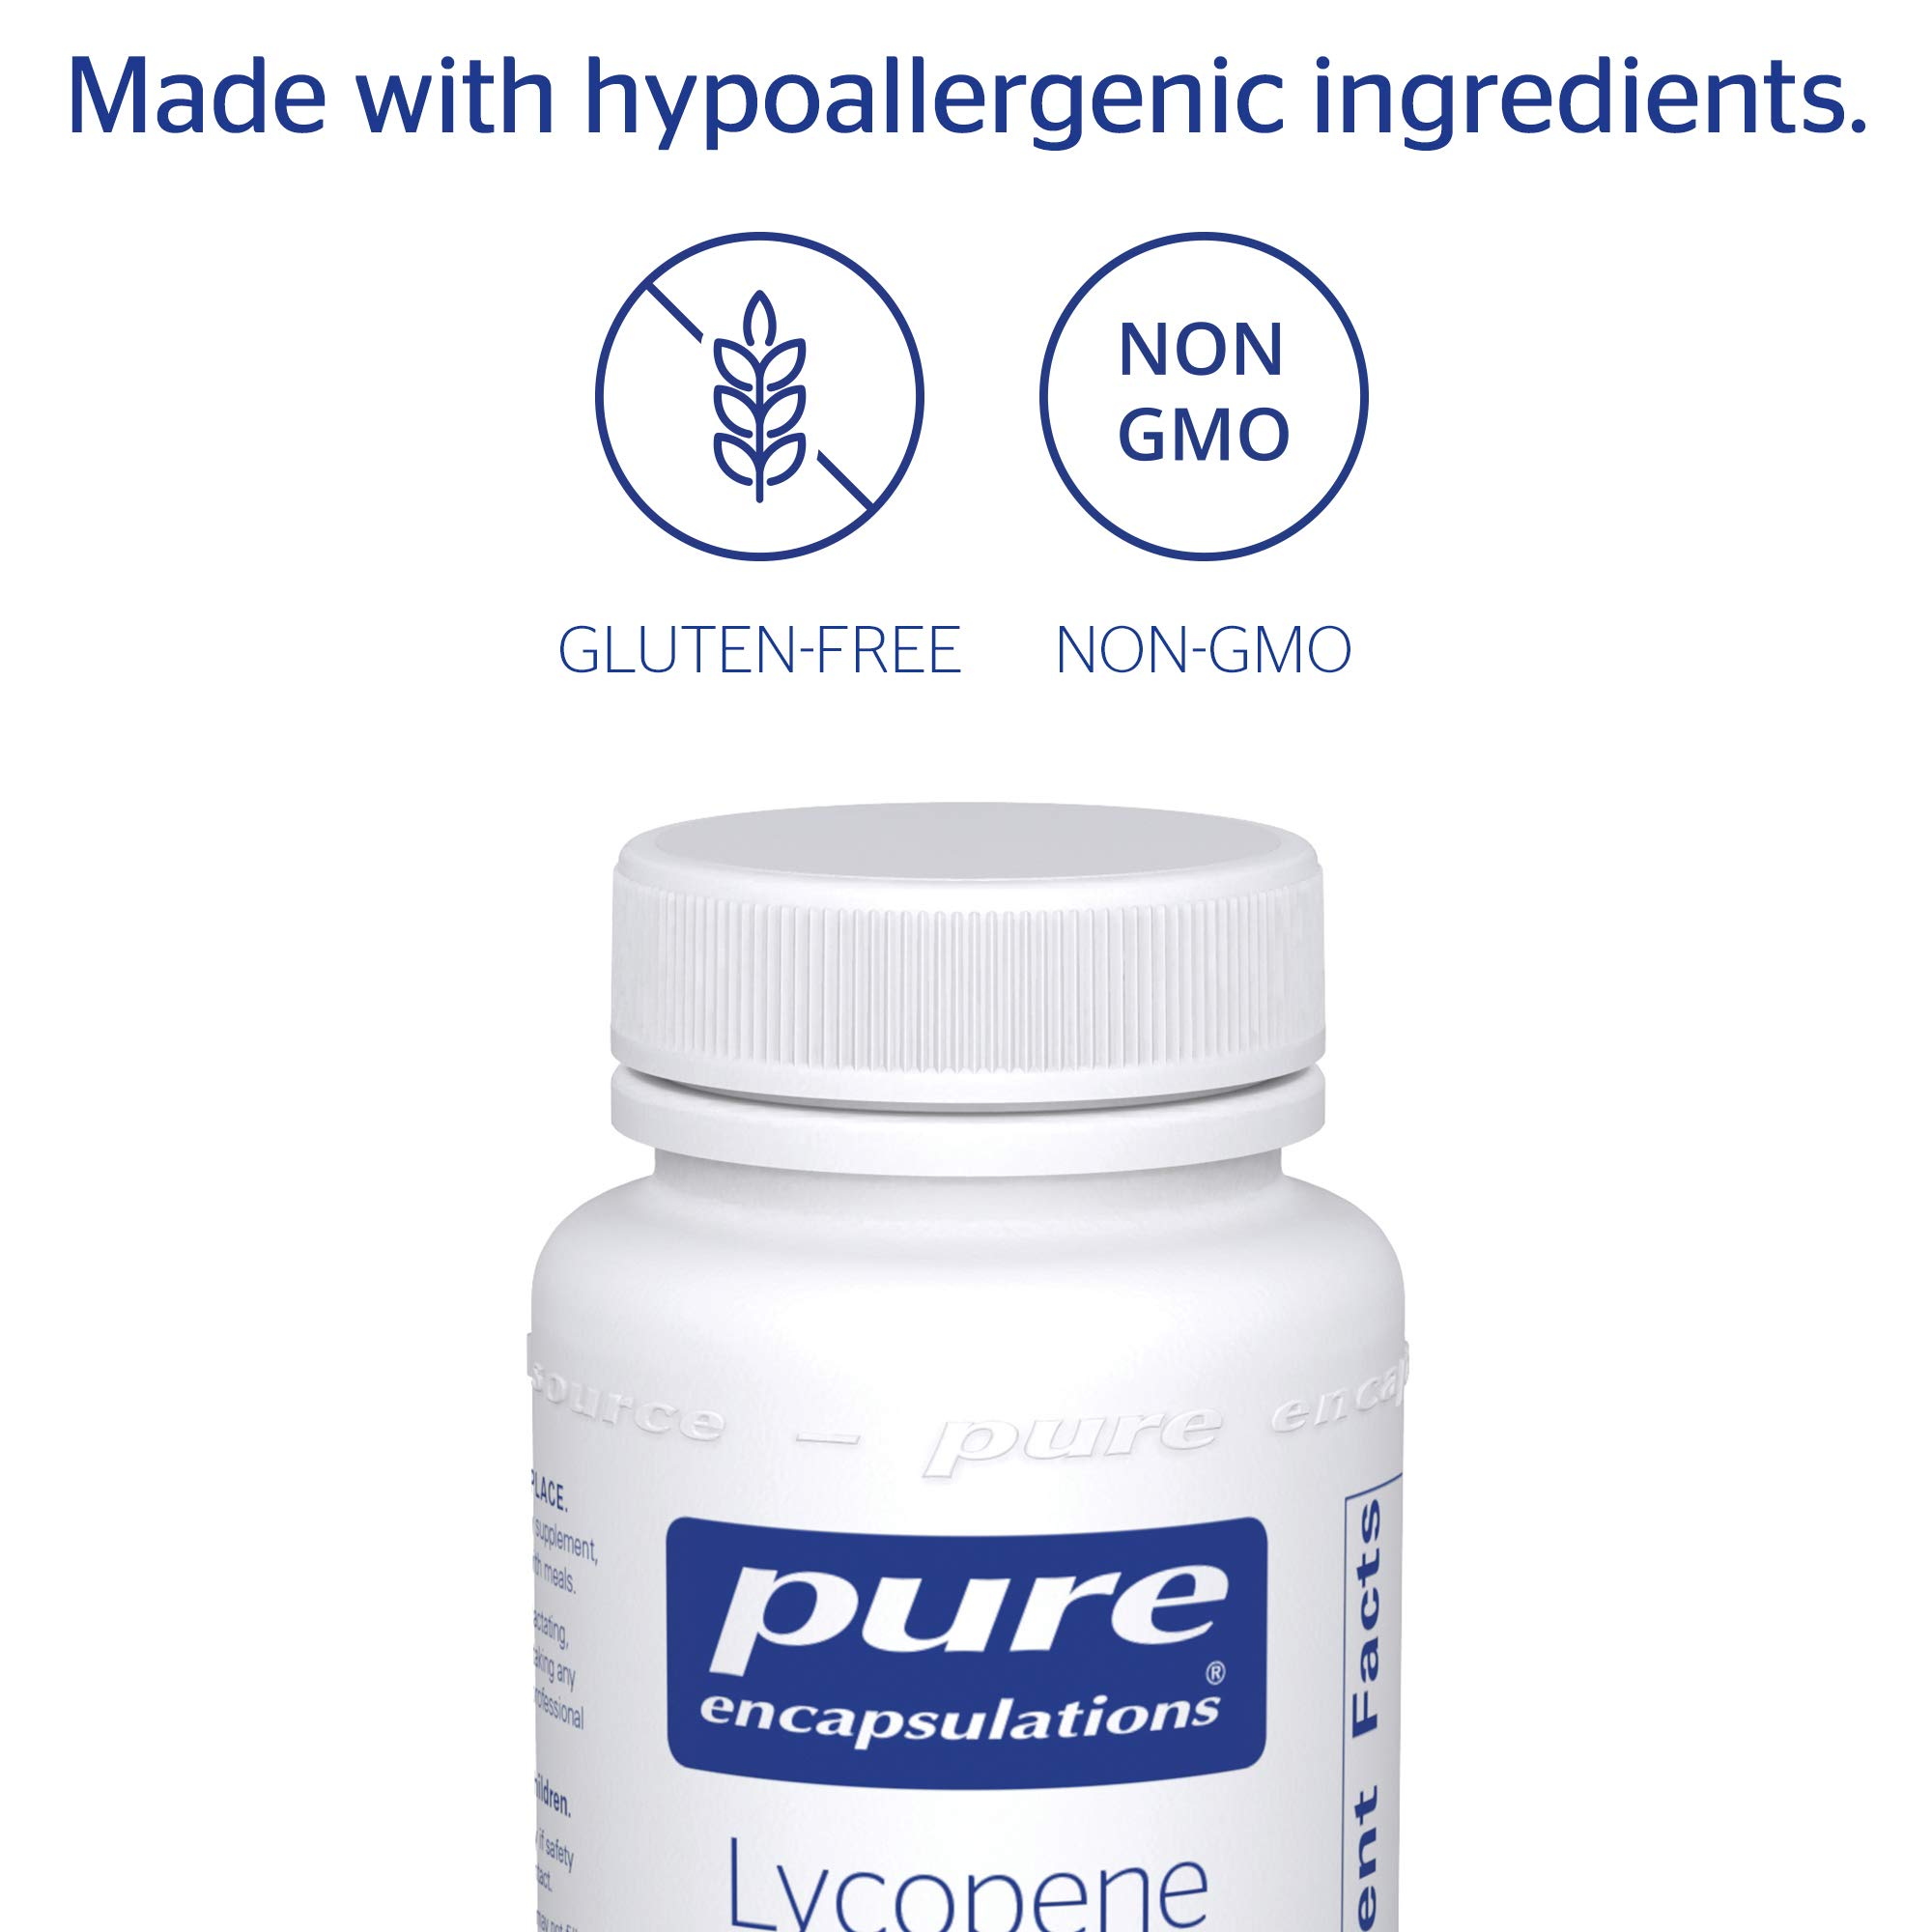 Pure Encapsulations - Lycopene 10 mg - Dietary Supplement for Prostate, Cellular and Macular Support* - 100 Softgel Capsules by Pure Encapsulations (Image #4)